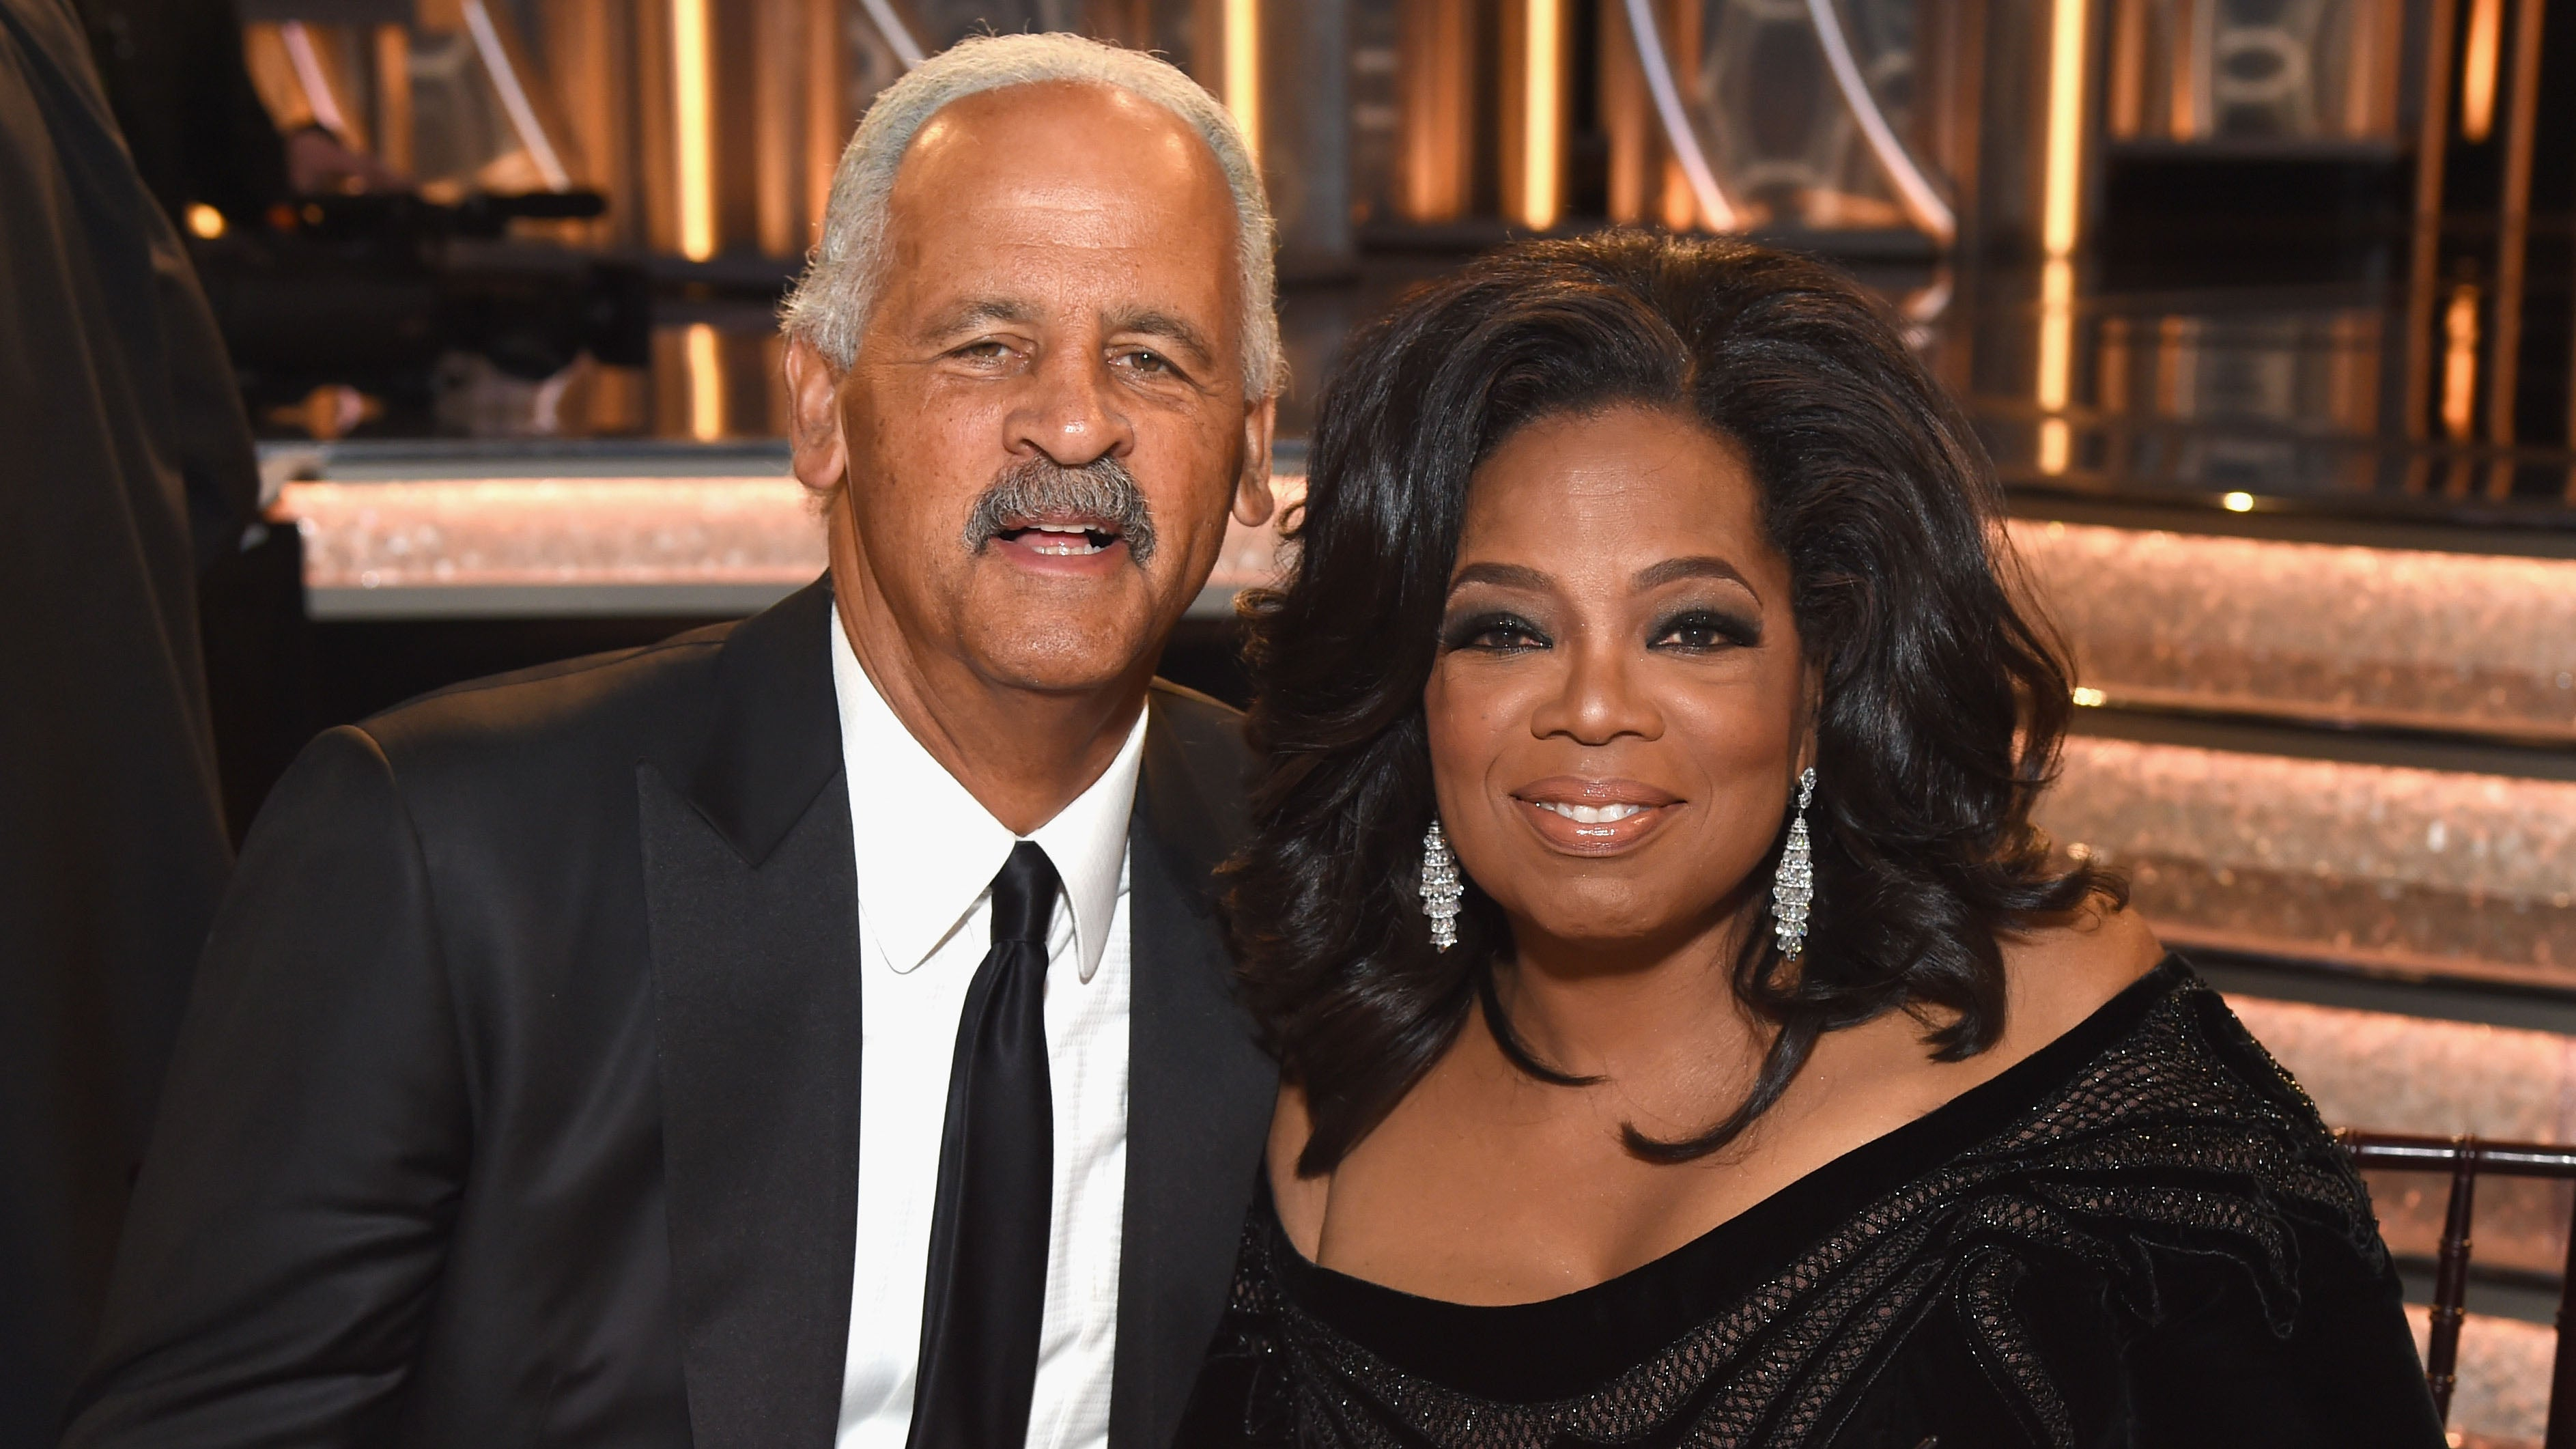 Why Oprah Winfrey Said 'Yes' to Stedman Graham's Proposal But Never Married